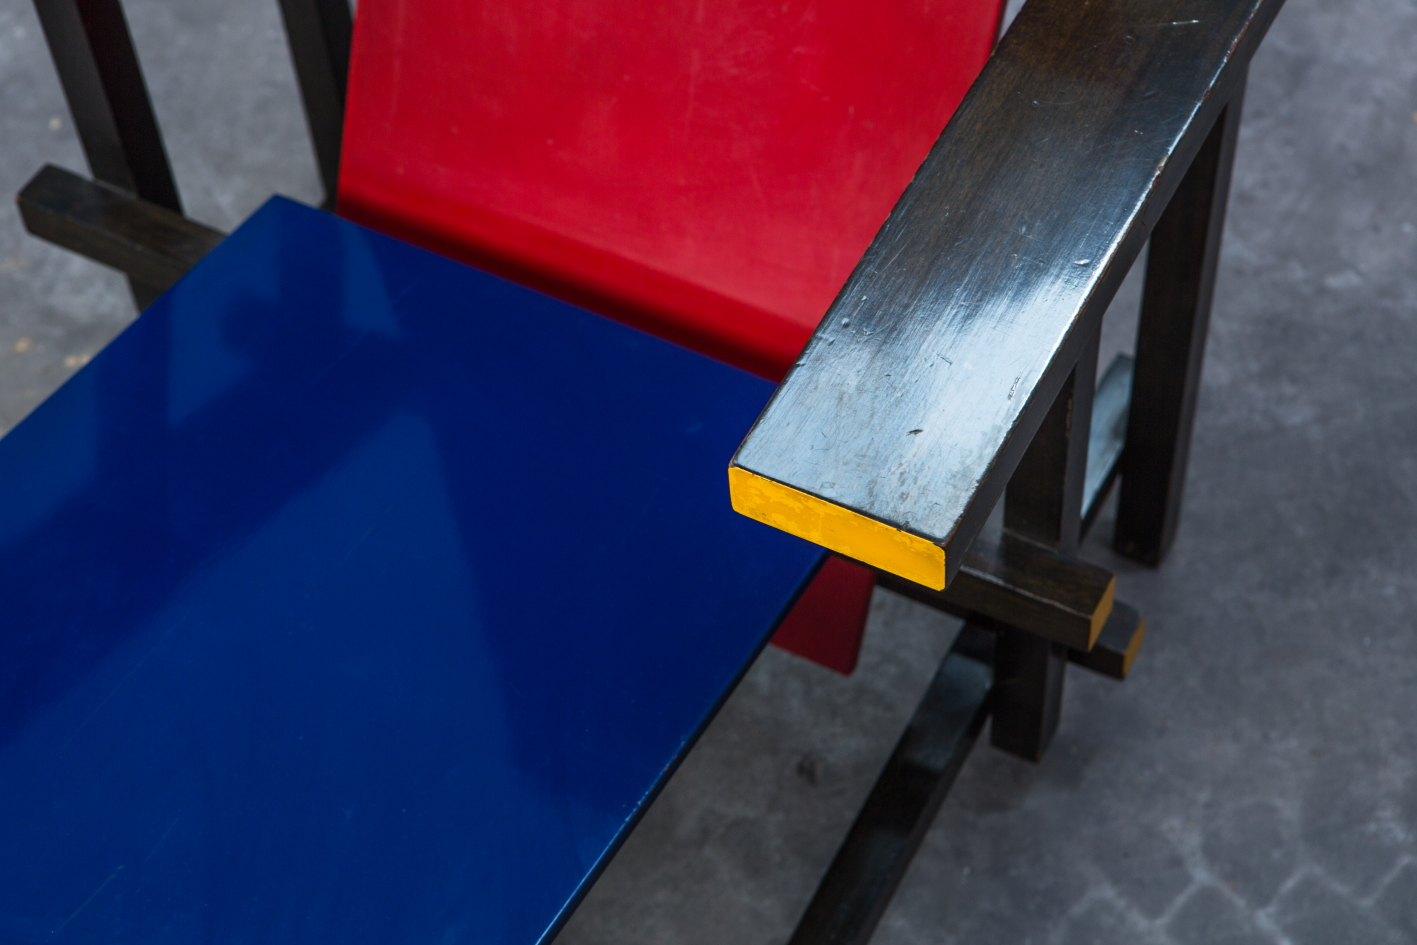 Early Red & Blue chair - Gerrit Rietveld for Cassina signed n.23 - Colour detail